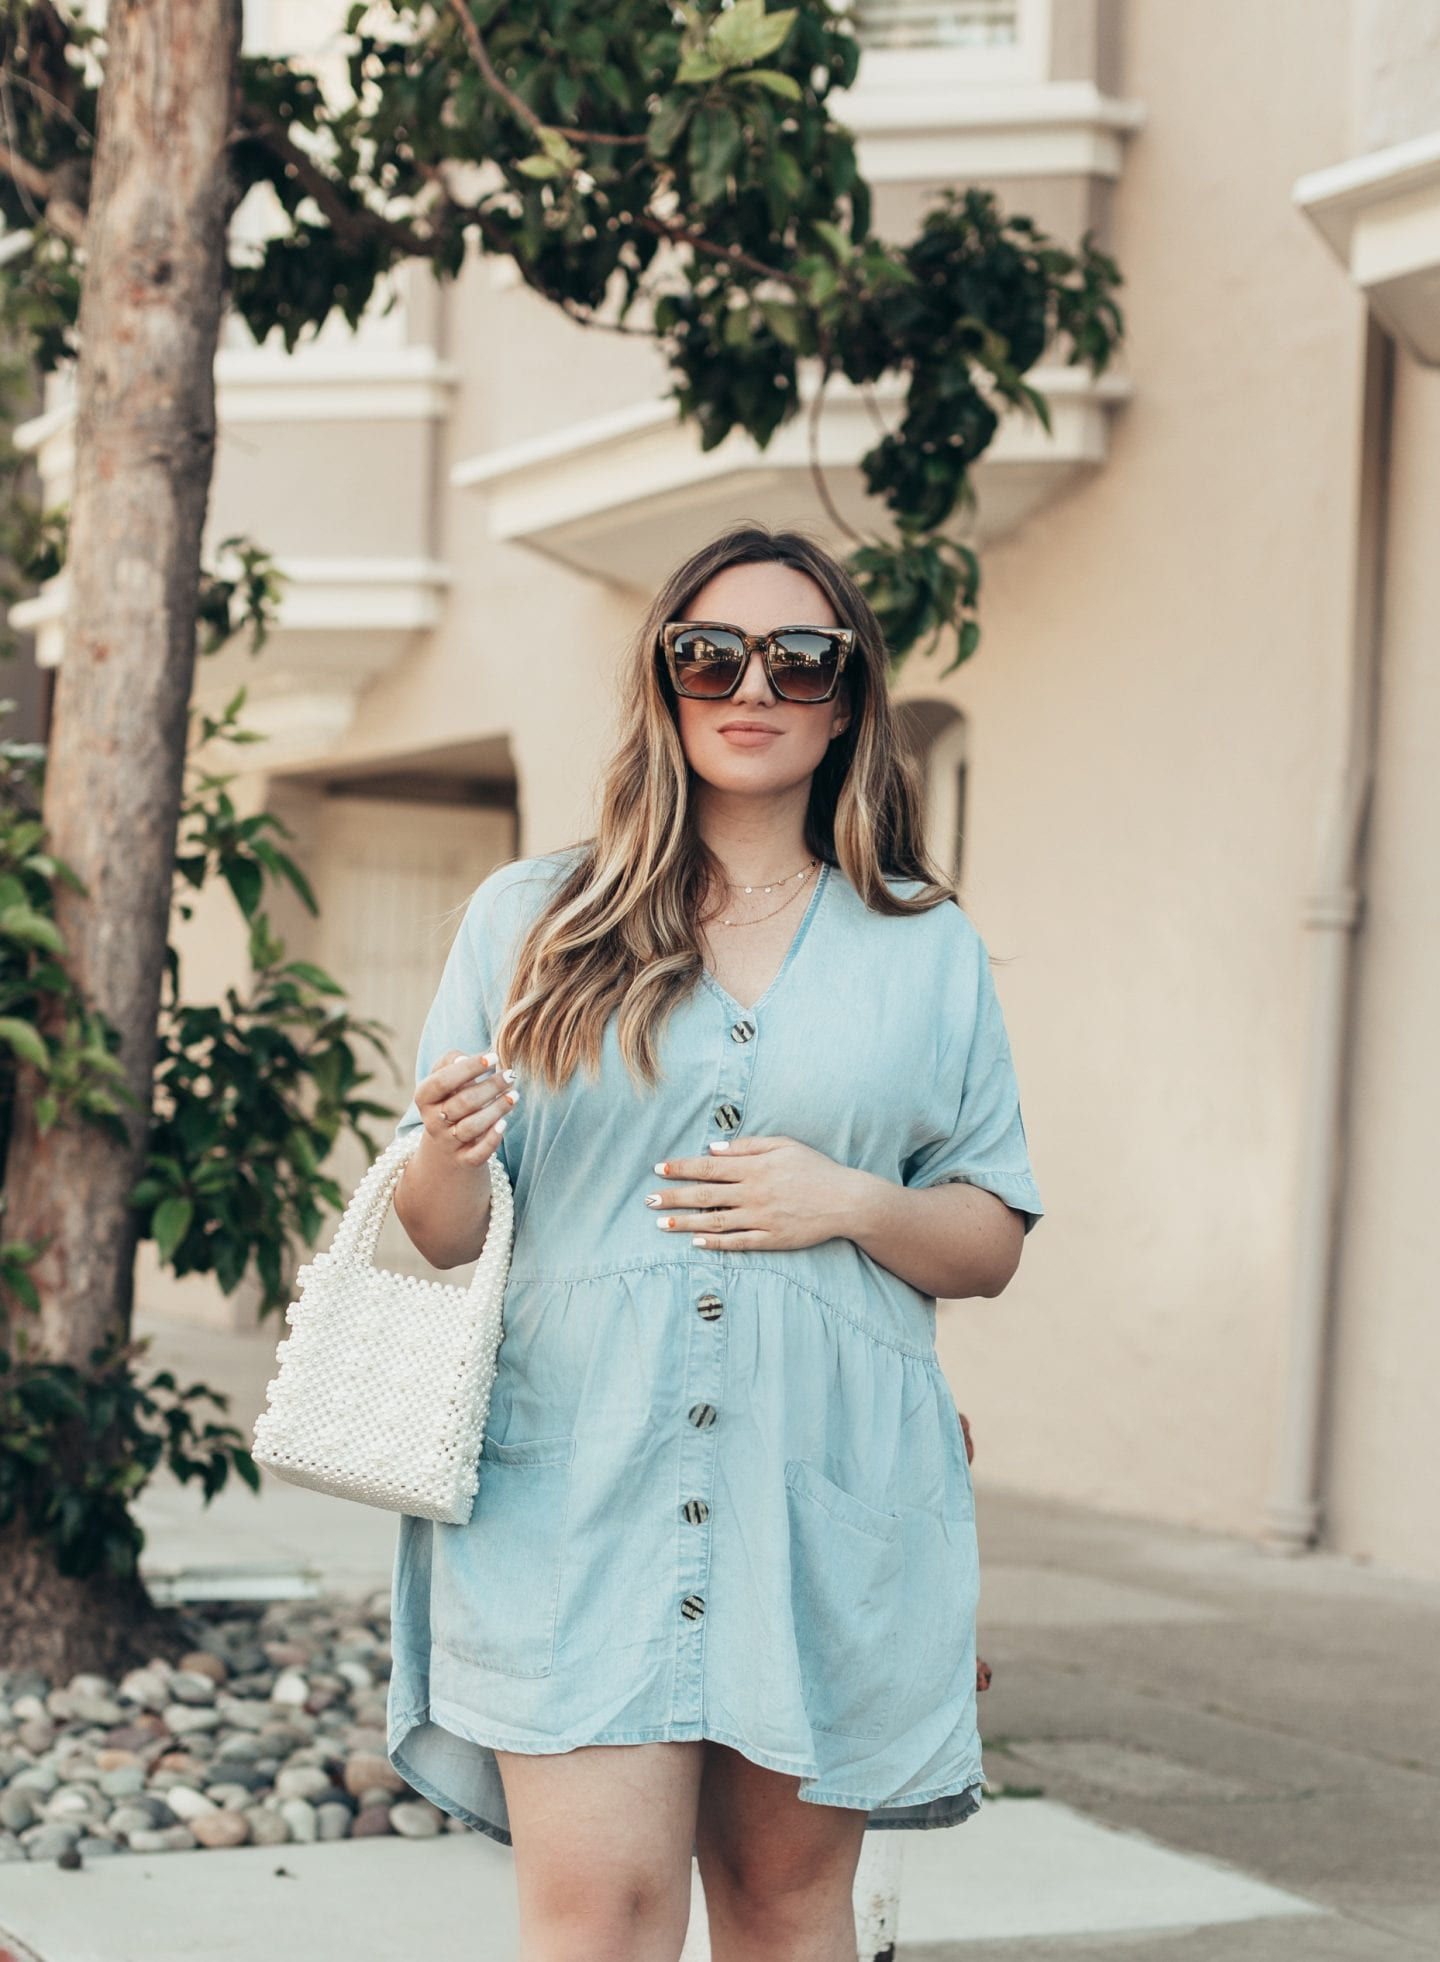 Maternity Style for Each Trimester by popular California fashion blog, Just Add Glam: image of a woman wearing a denim shirt dress.